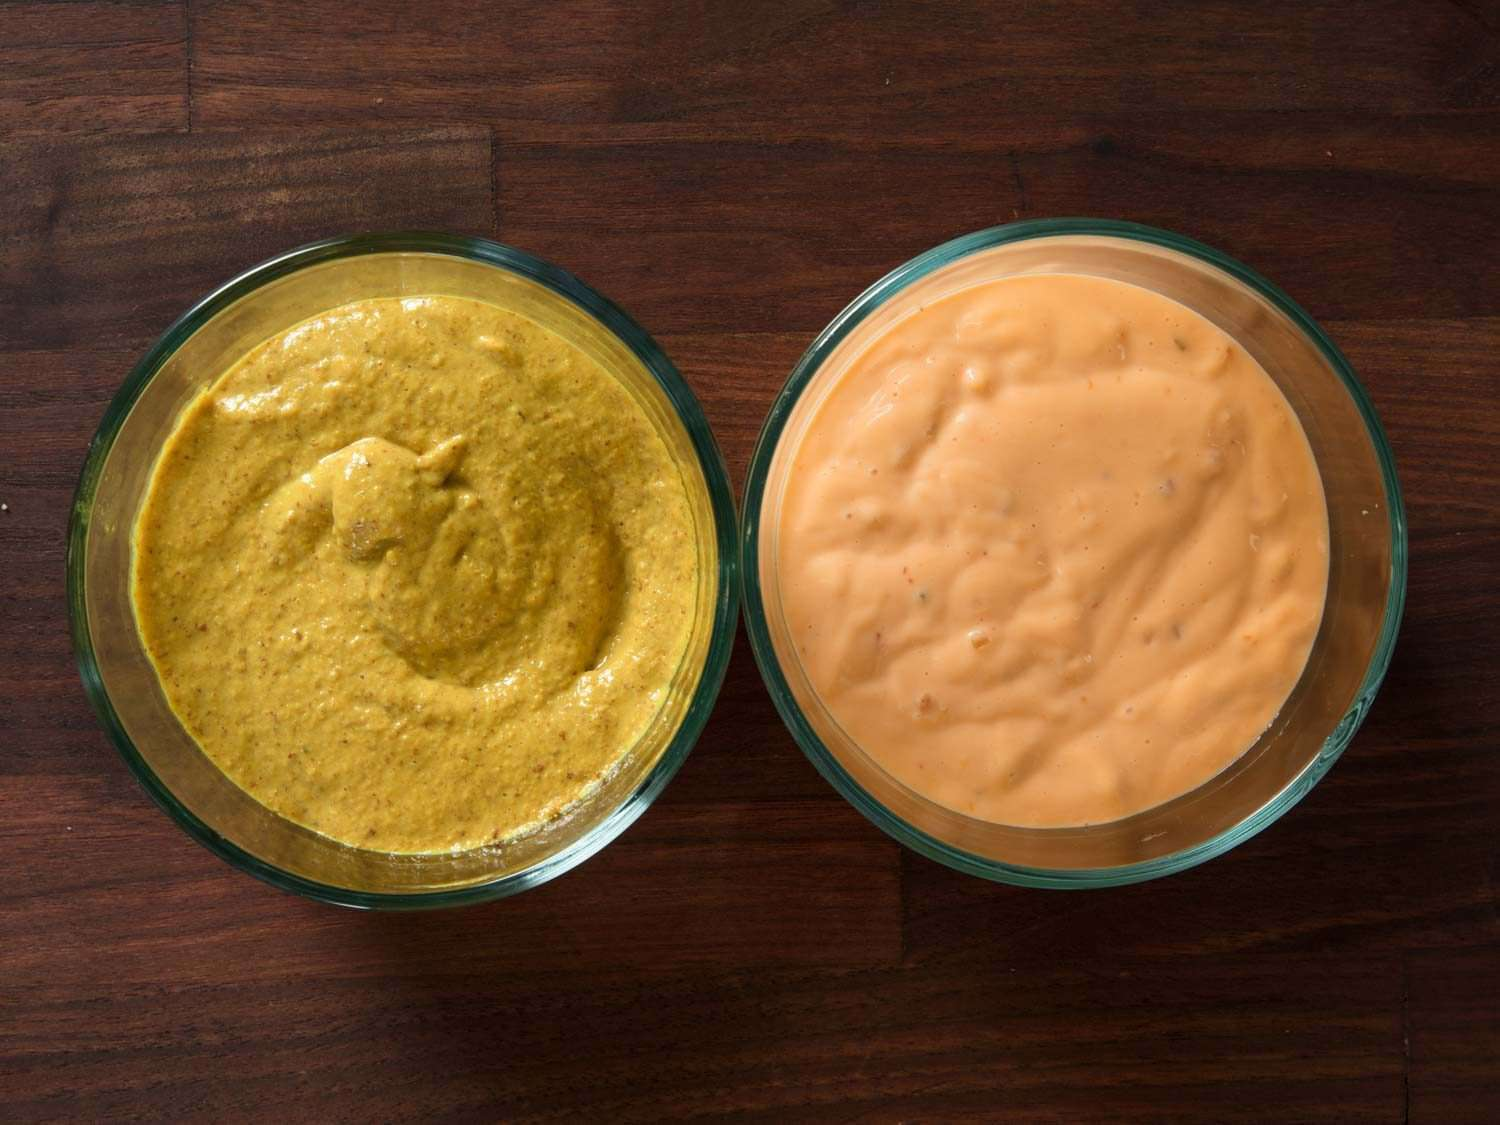 Yellow mustard and Russian dressing in two bowls